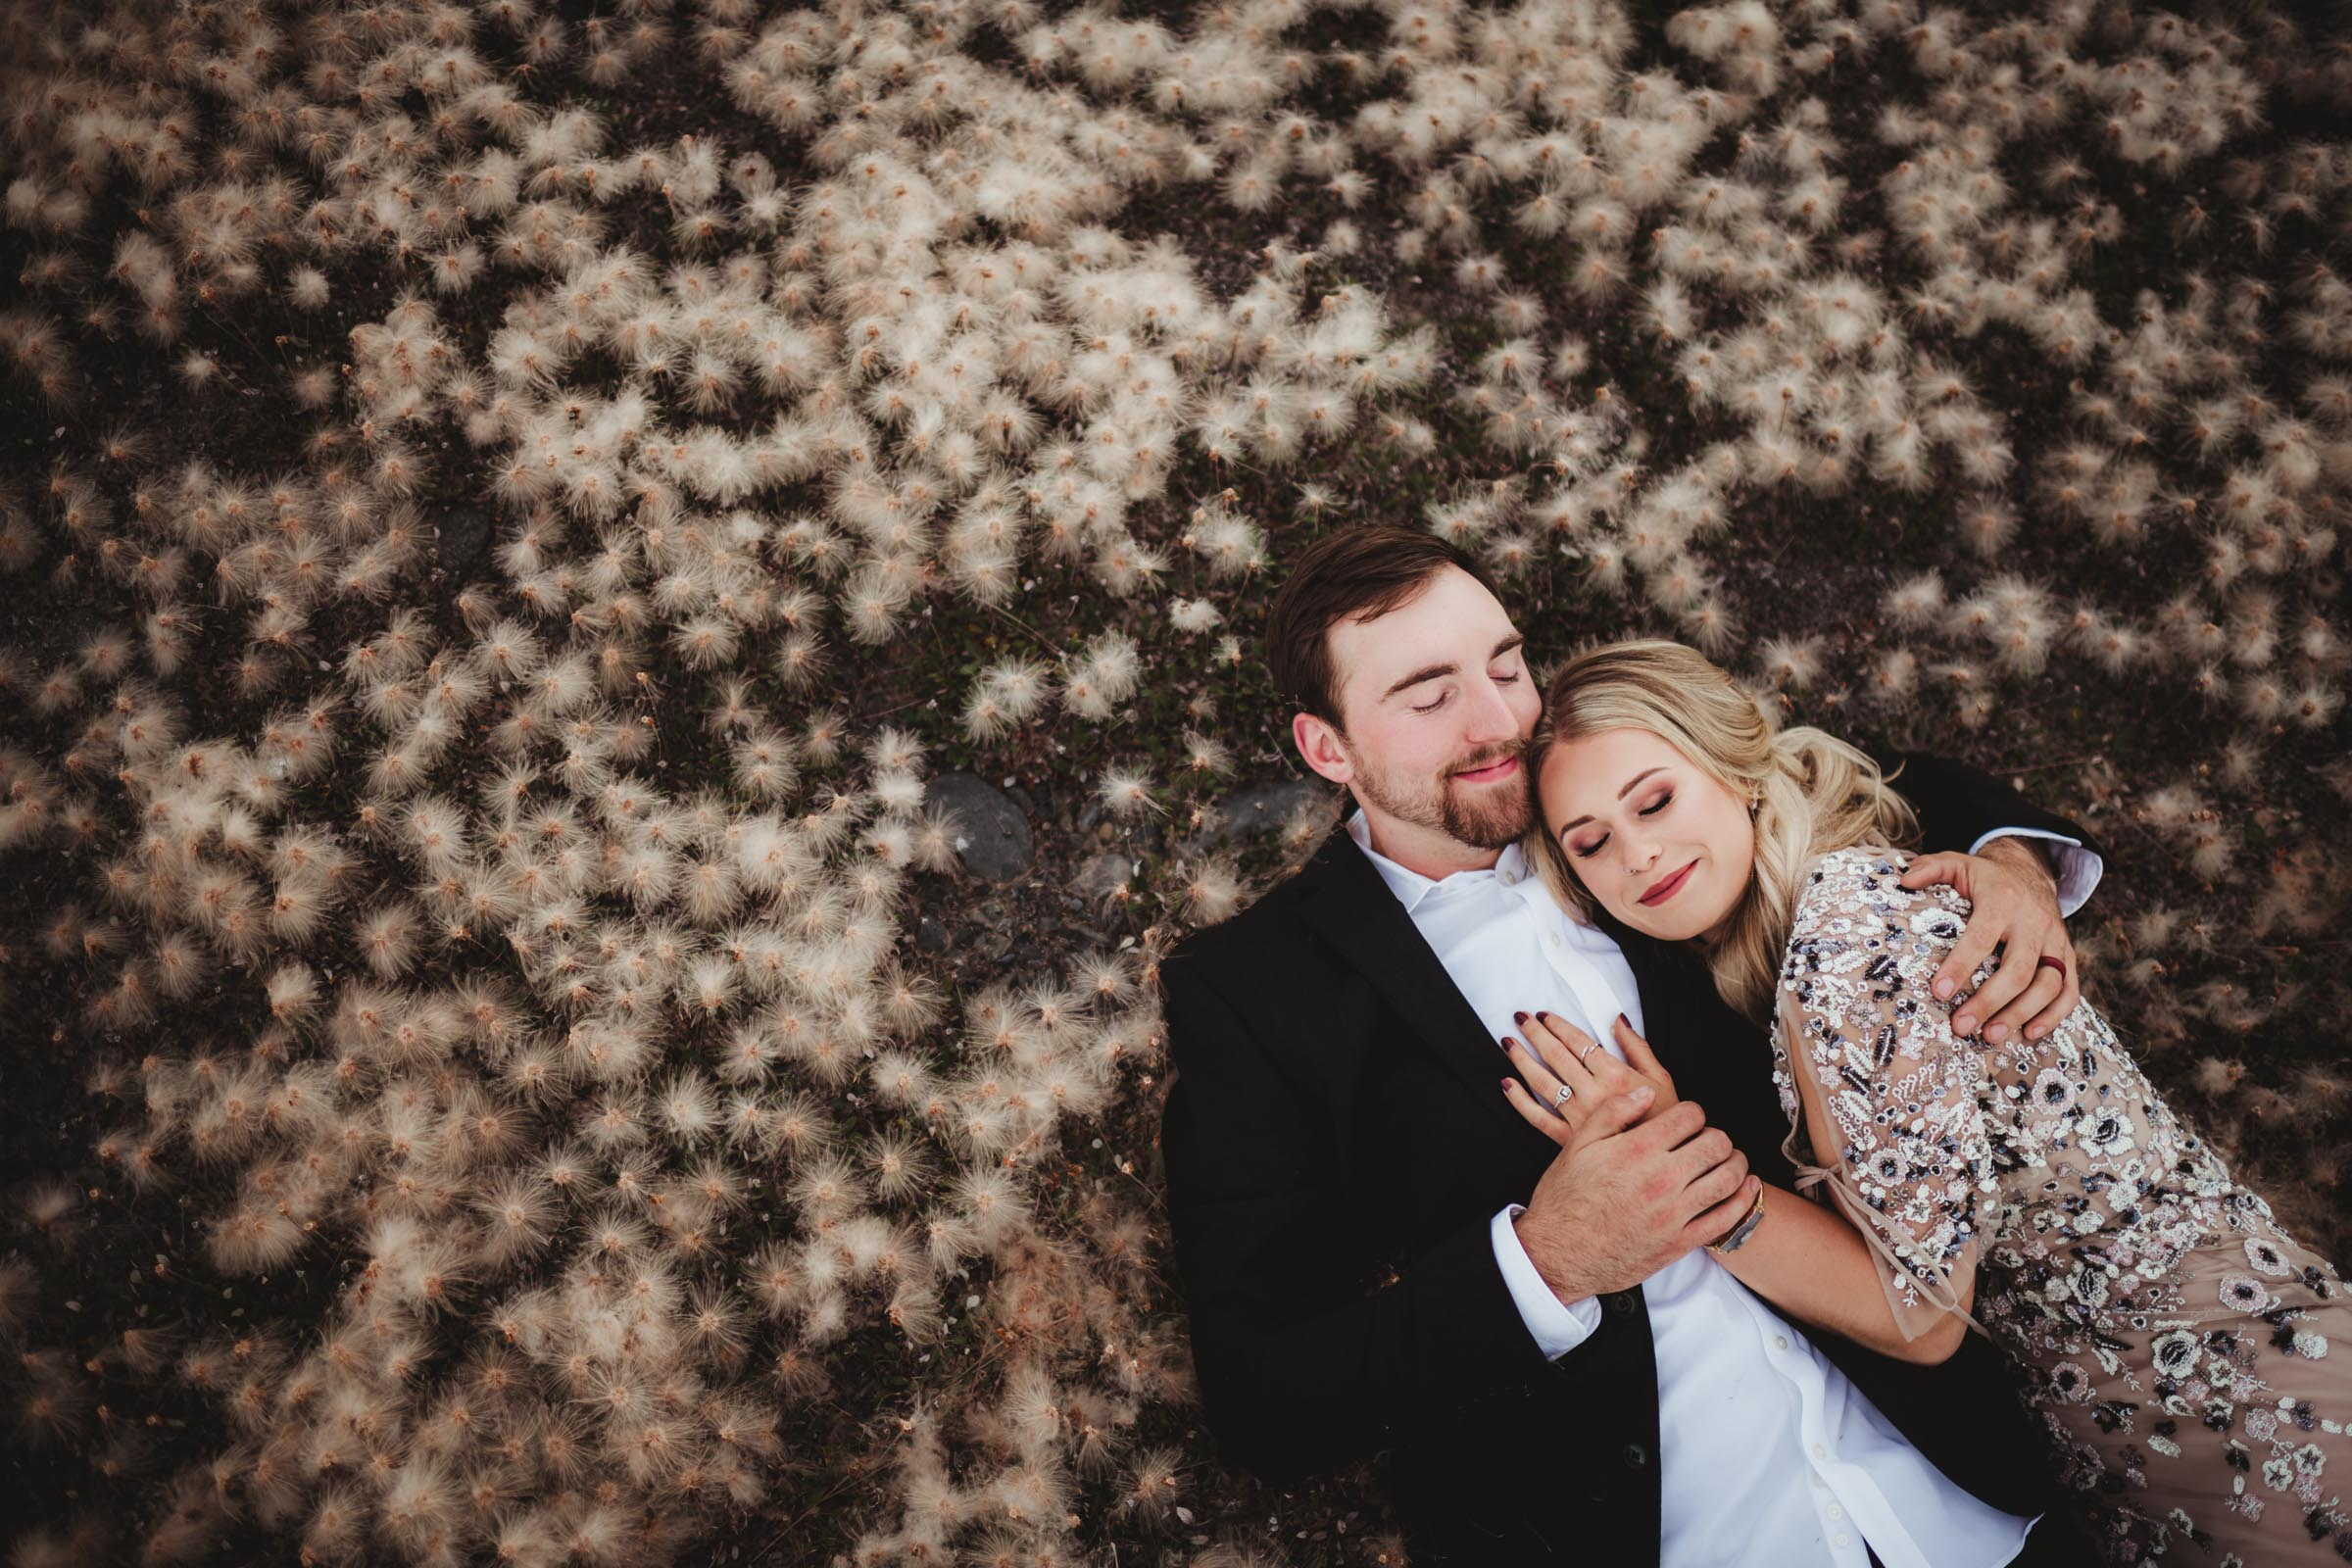 couple laying in a field of cotton flowers